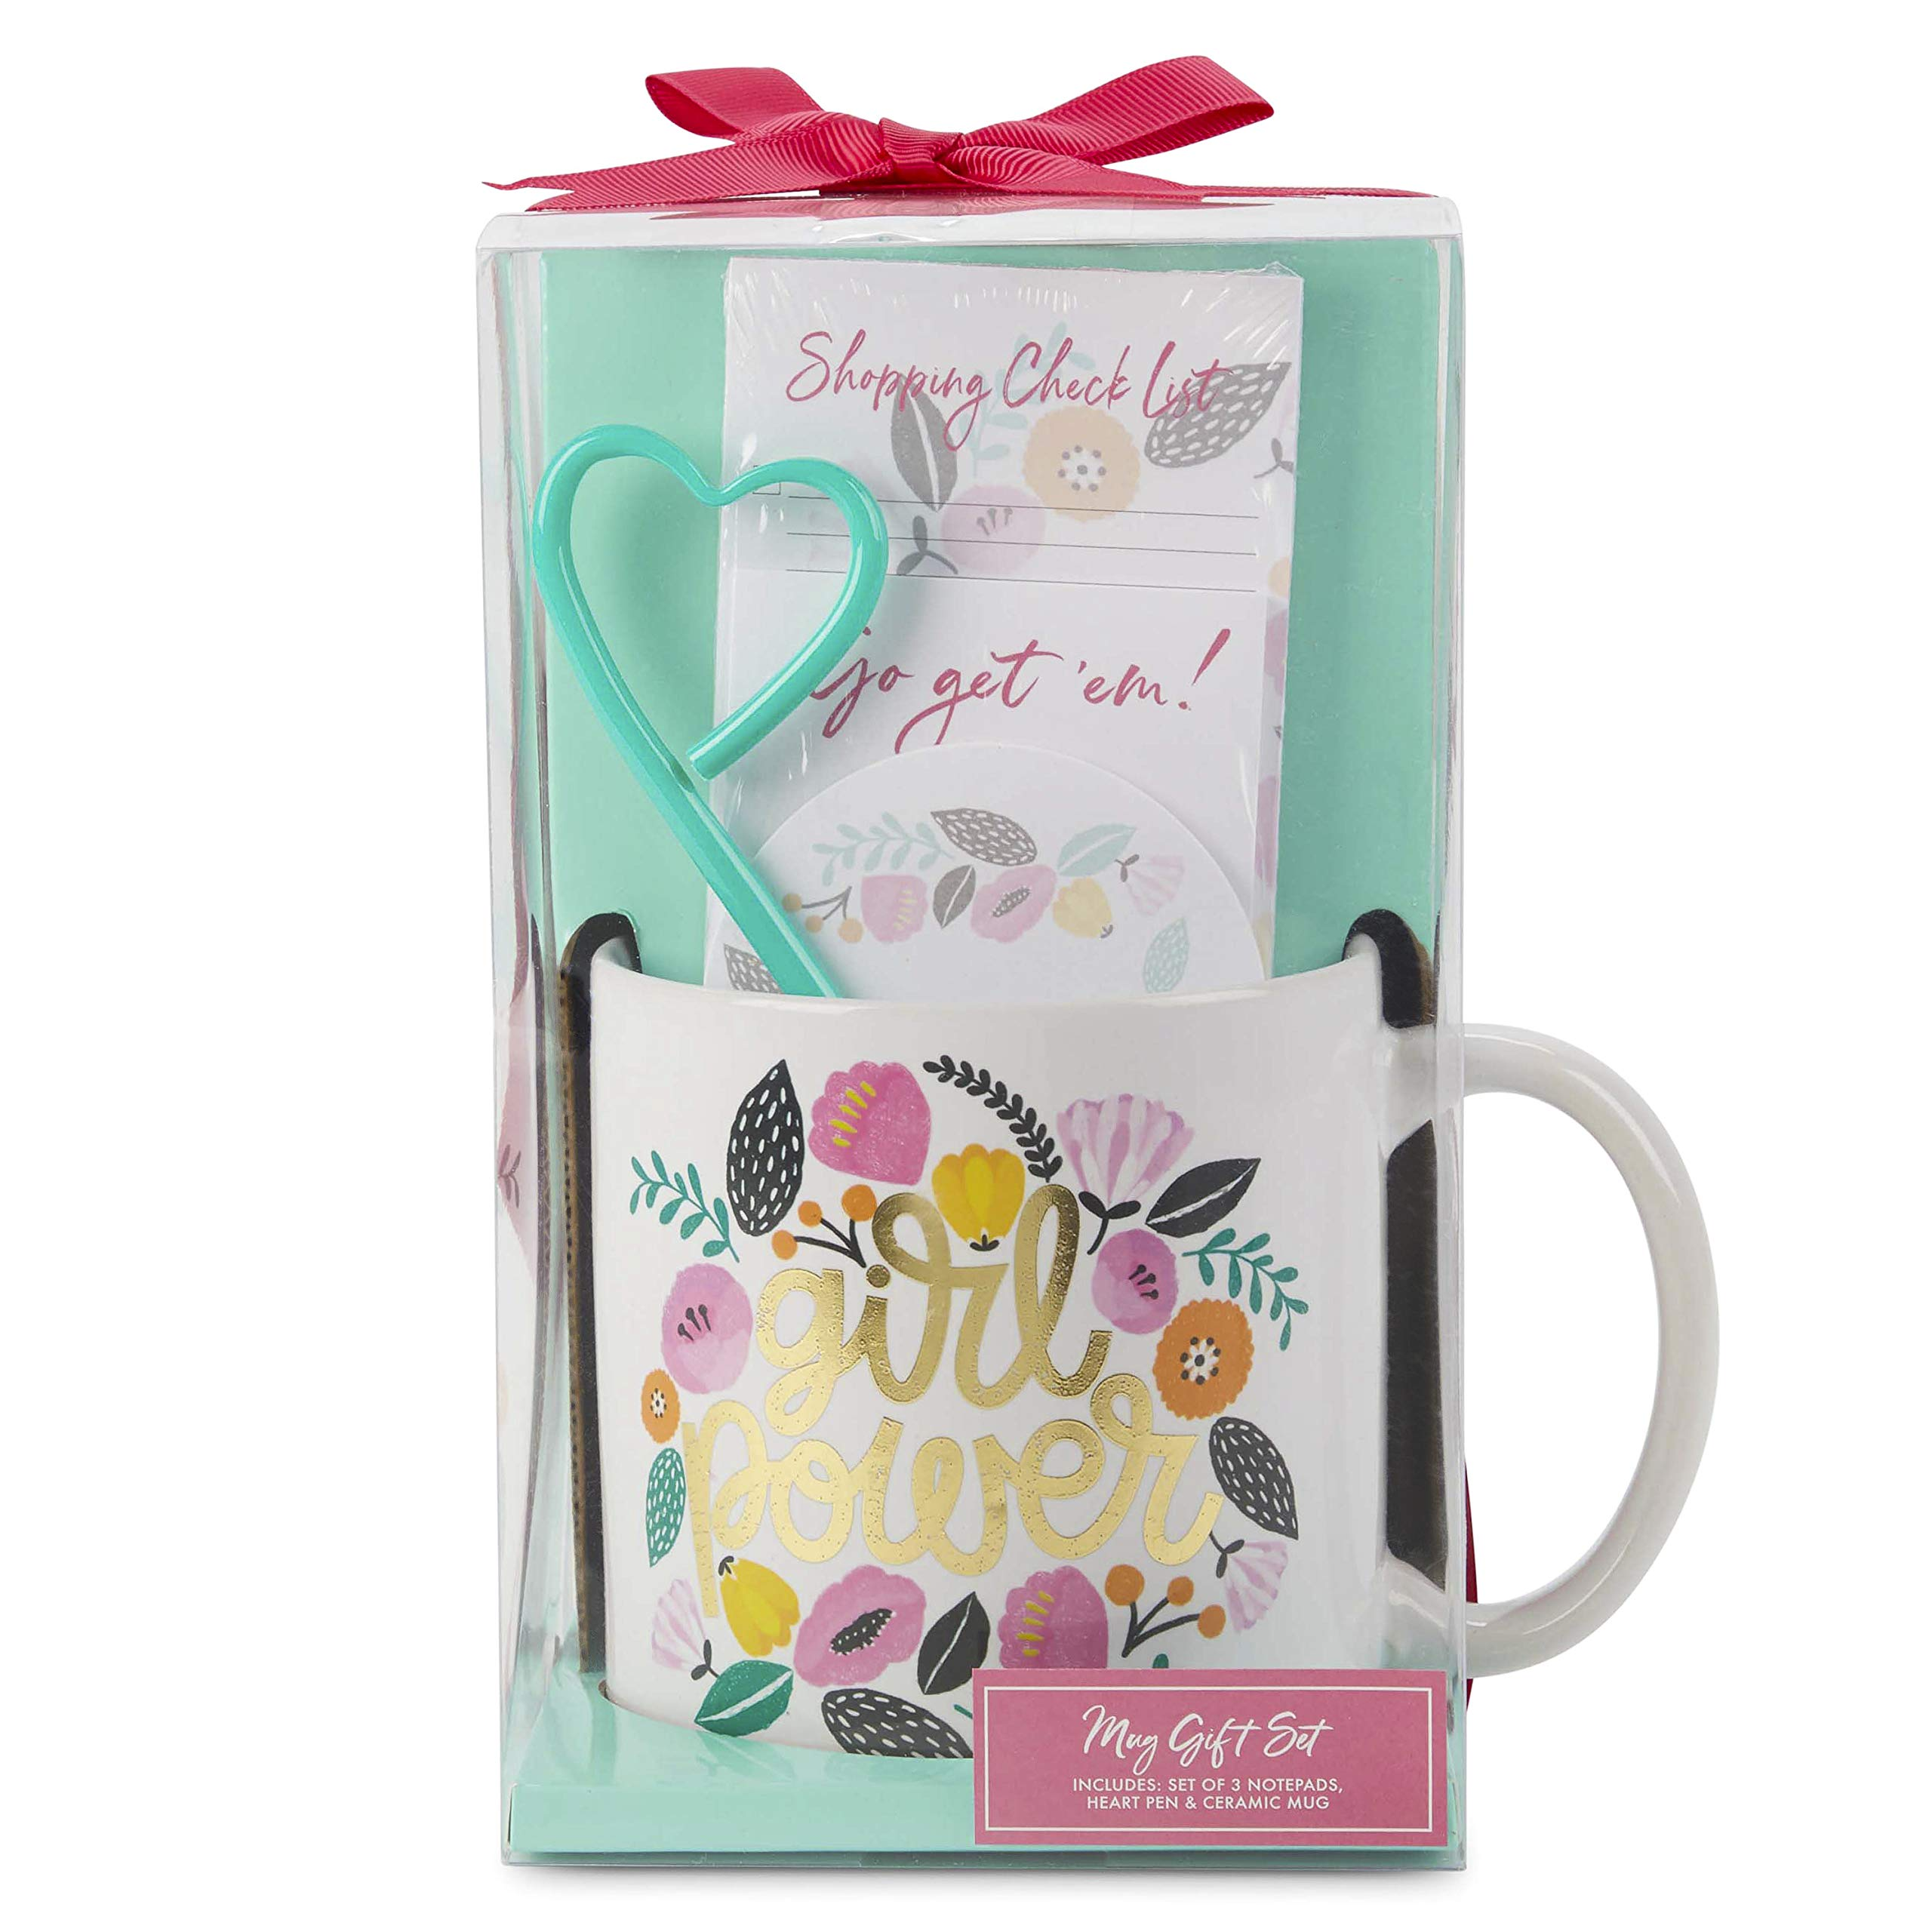 Charming Charlie Mug and Stationery Gift Set - 3 Assorted Notepads, Heart-Shaped Pen, Ceramic Cup - Pack of 5